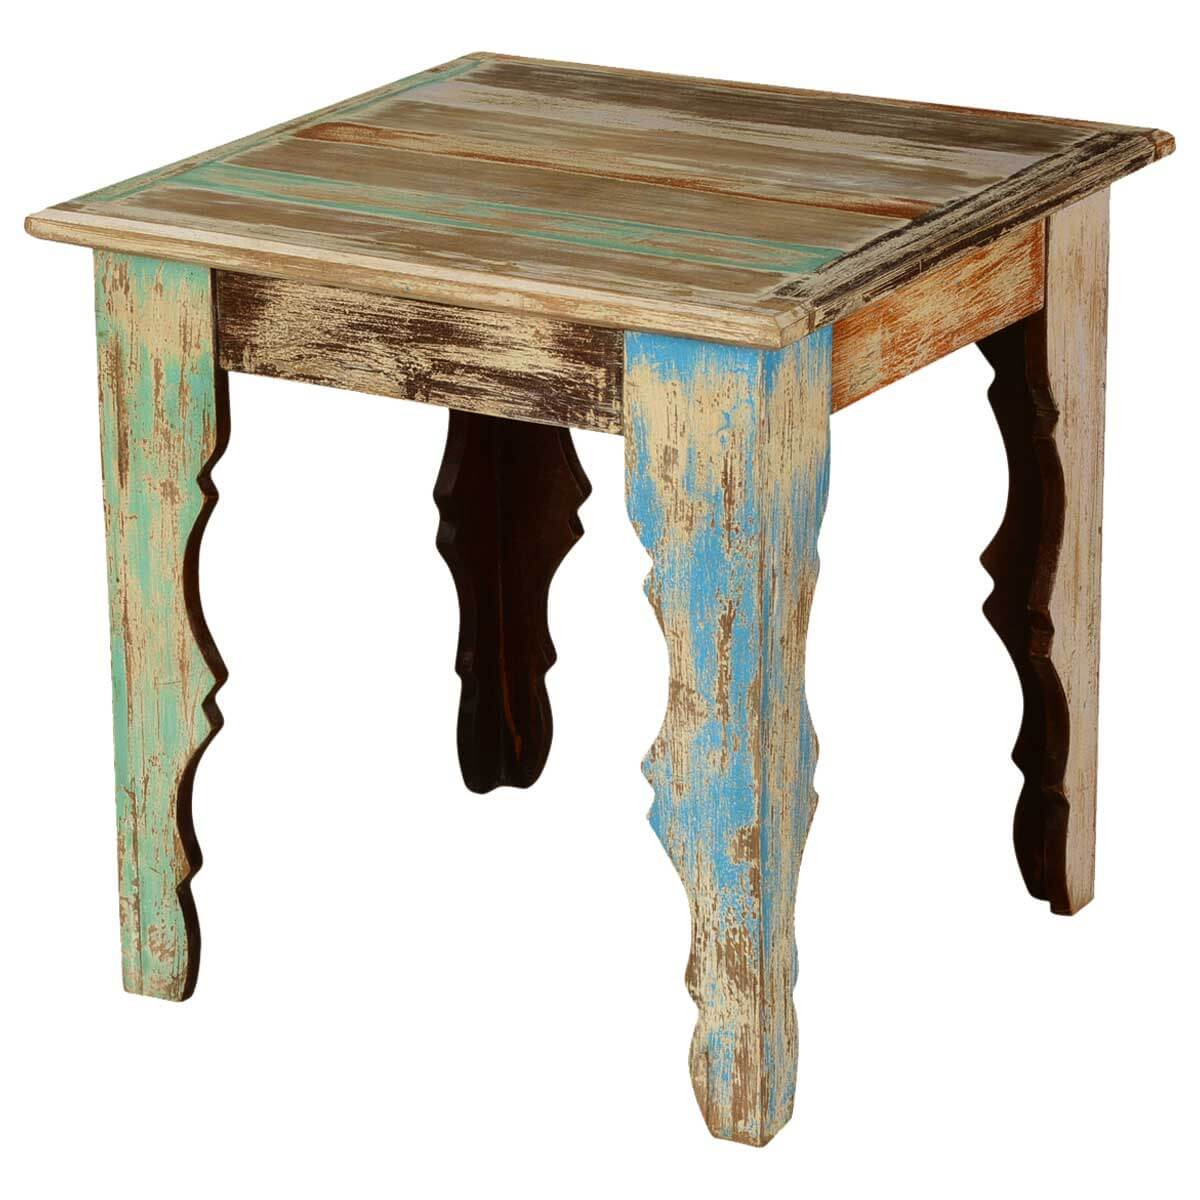 Rustic Parisian Mango Wood 23.5 Square End Table w V Shaped Legs